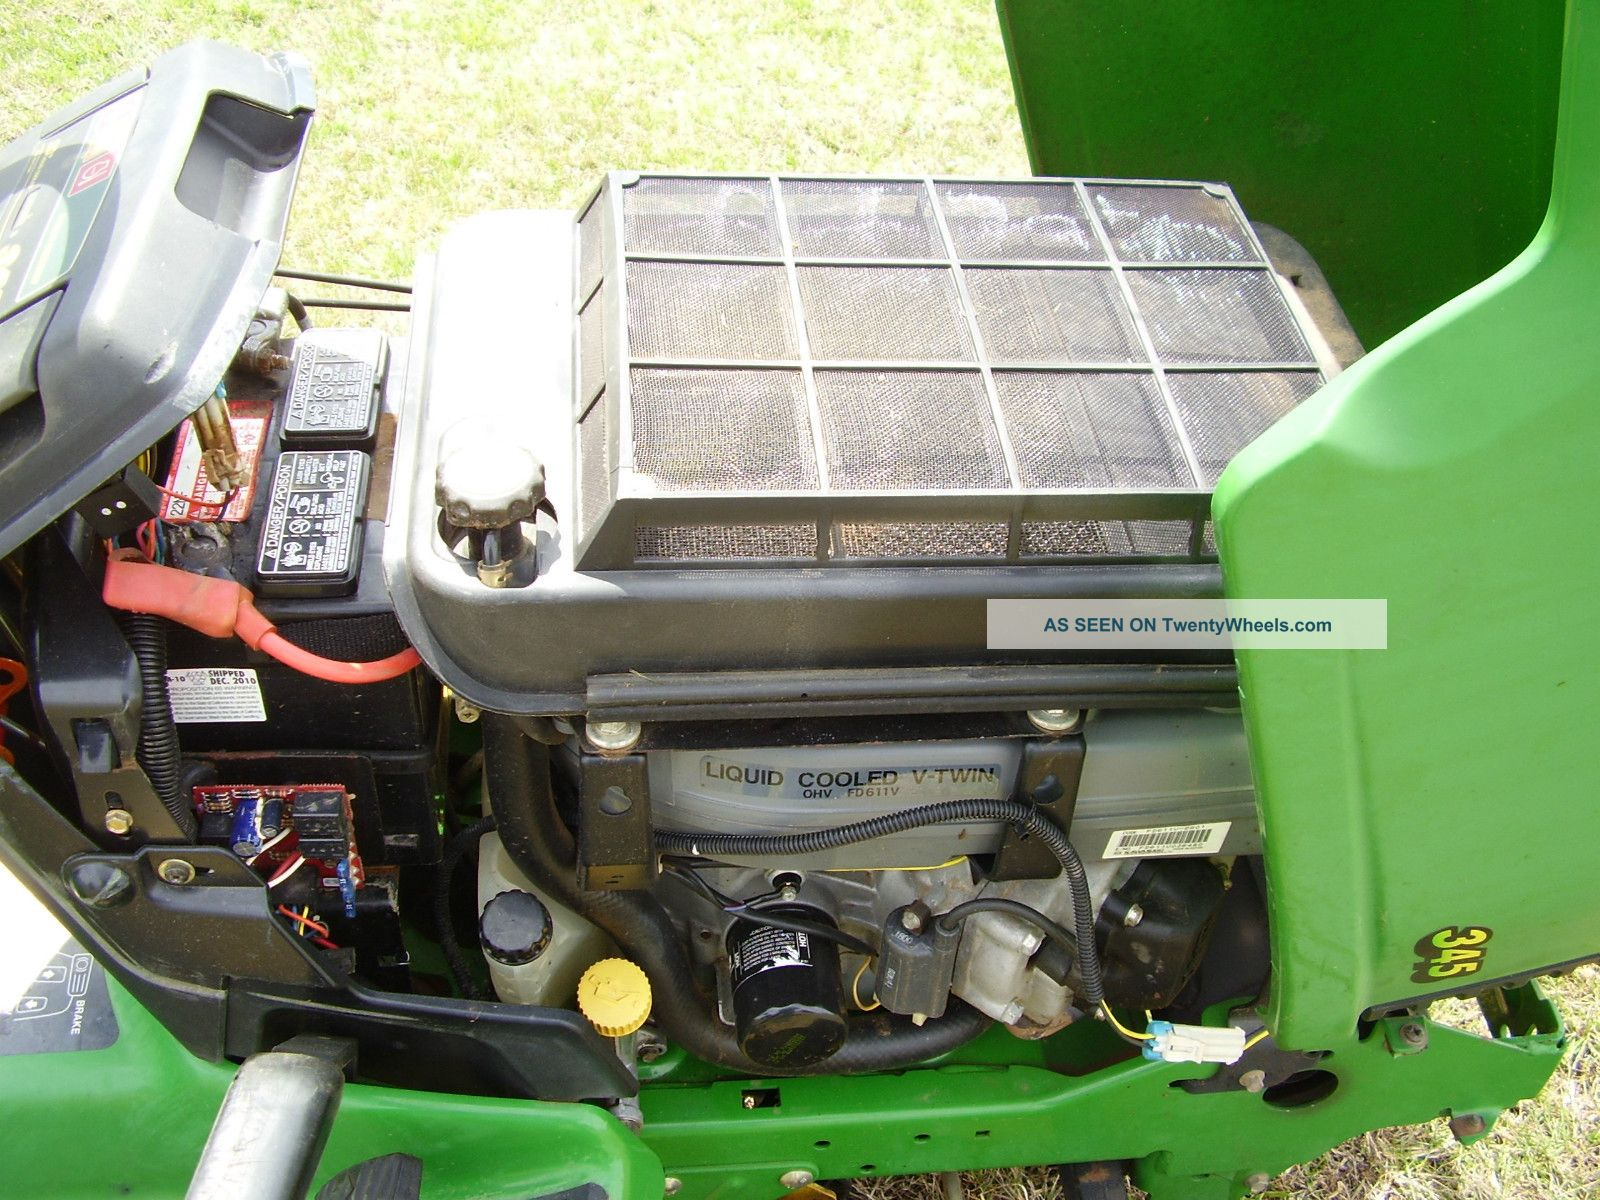 How do I lock the engine to tighten the new PTO